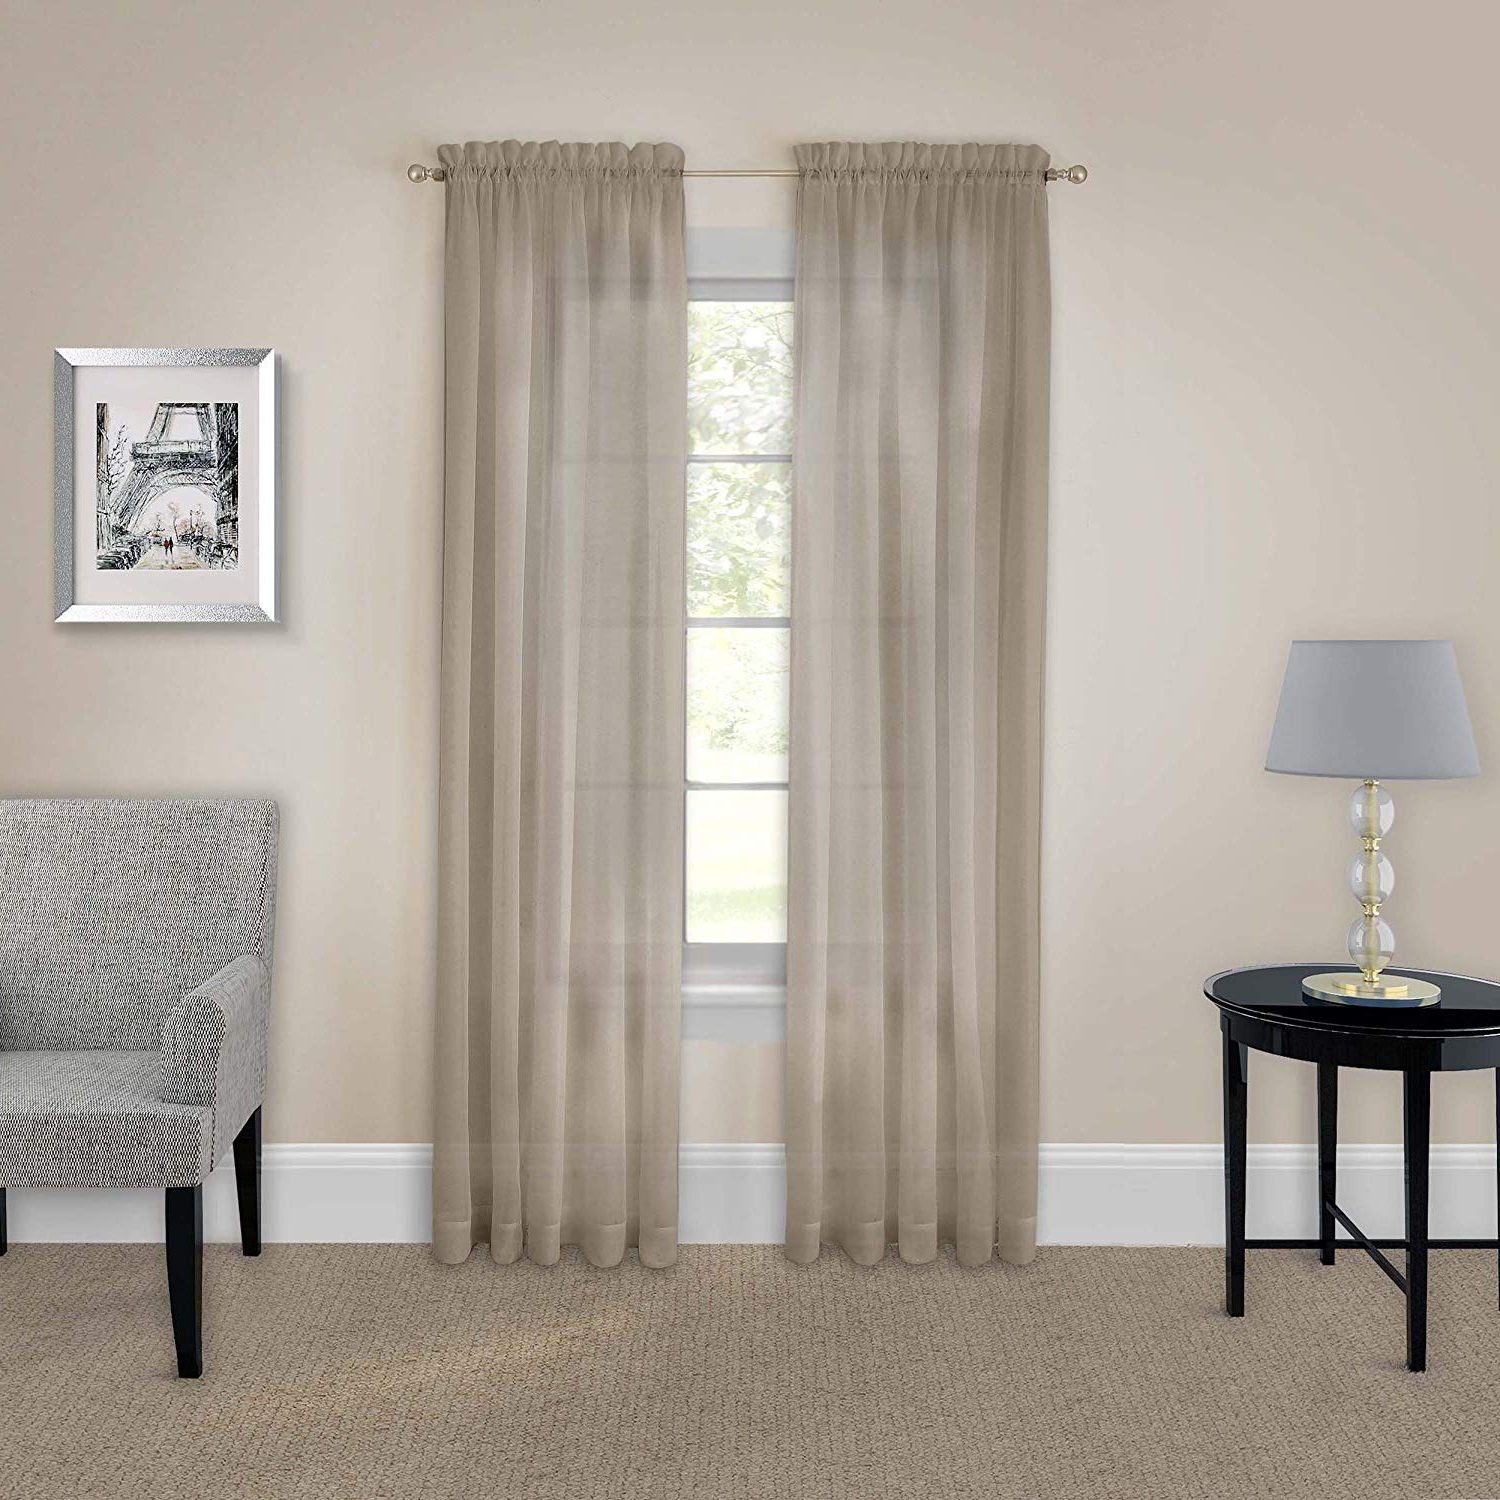 Pairs To Go Victoria Voile Curtain Panel Pairs Inside Well Known Pairs To Go 16005118x095tau Victoria Voile 118 Inch95 Inch Window Panel Pair, Taupe (View 4 of 20)